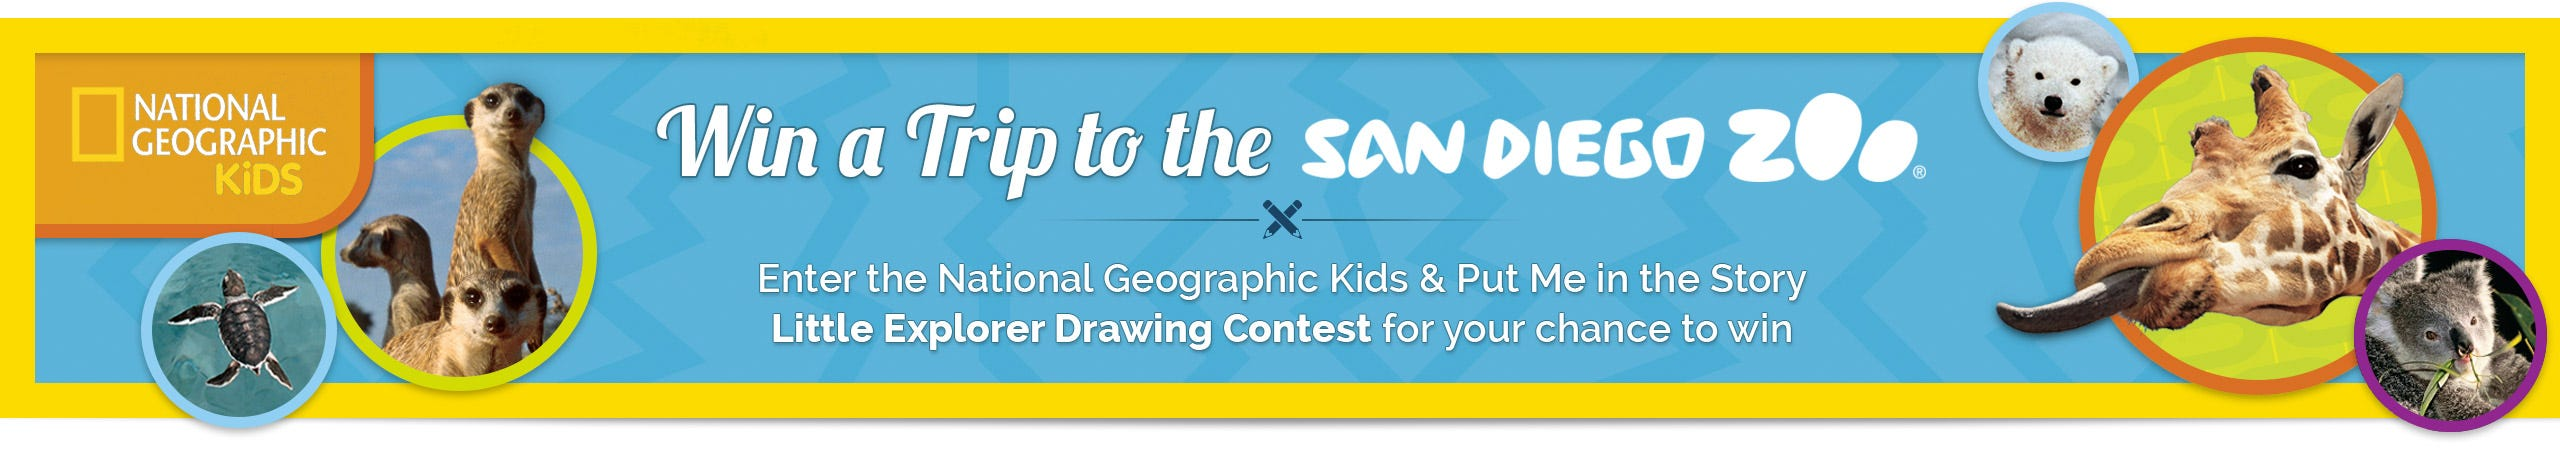 Win a Trip to the San Diego Zoo!